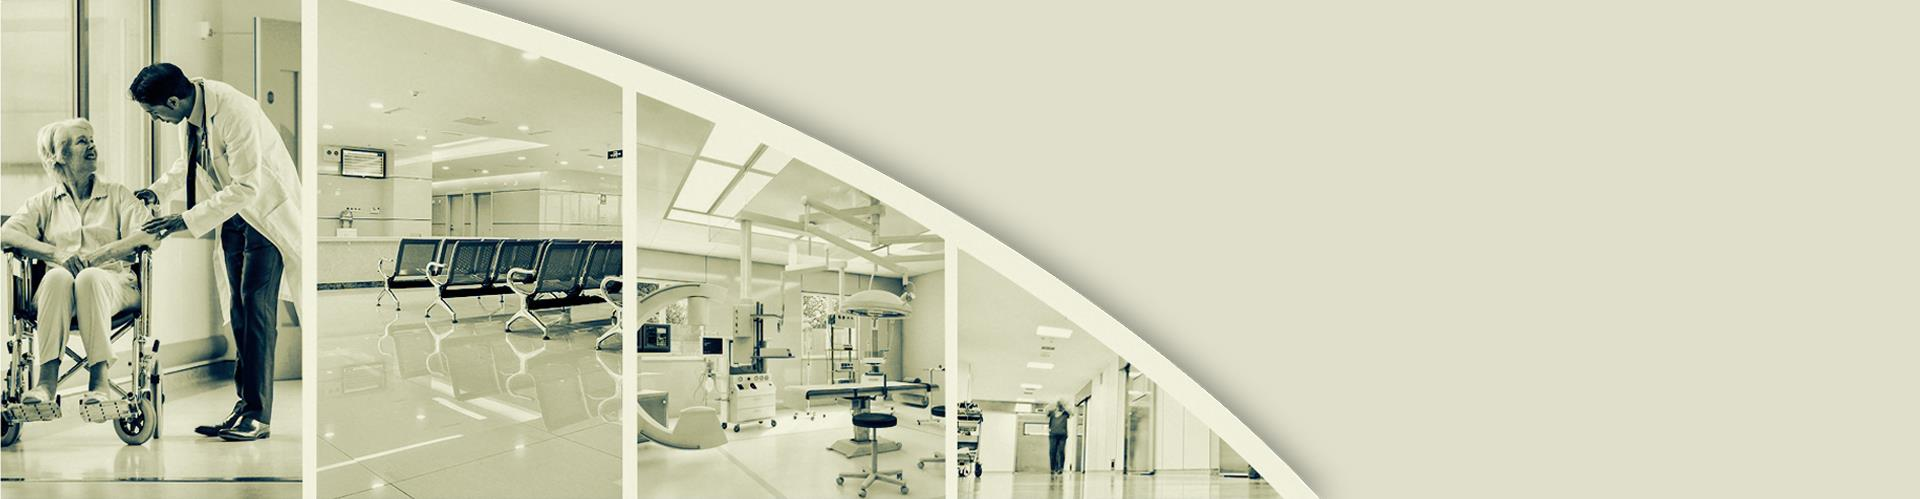 Healthcare Infrastructure Design